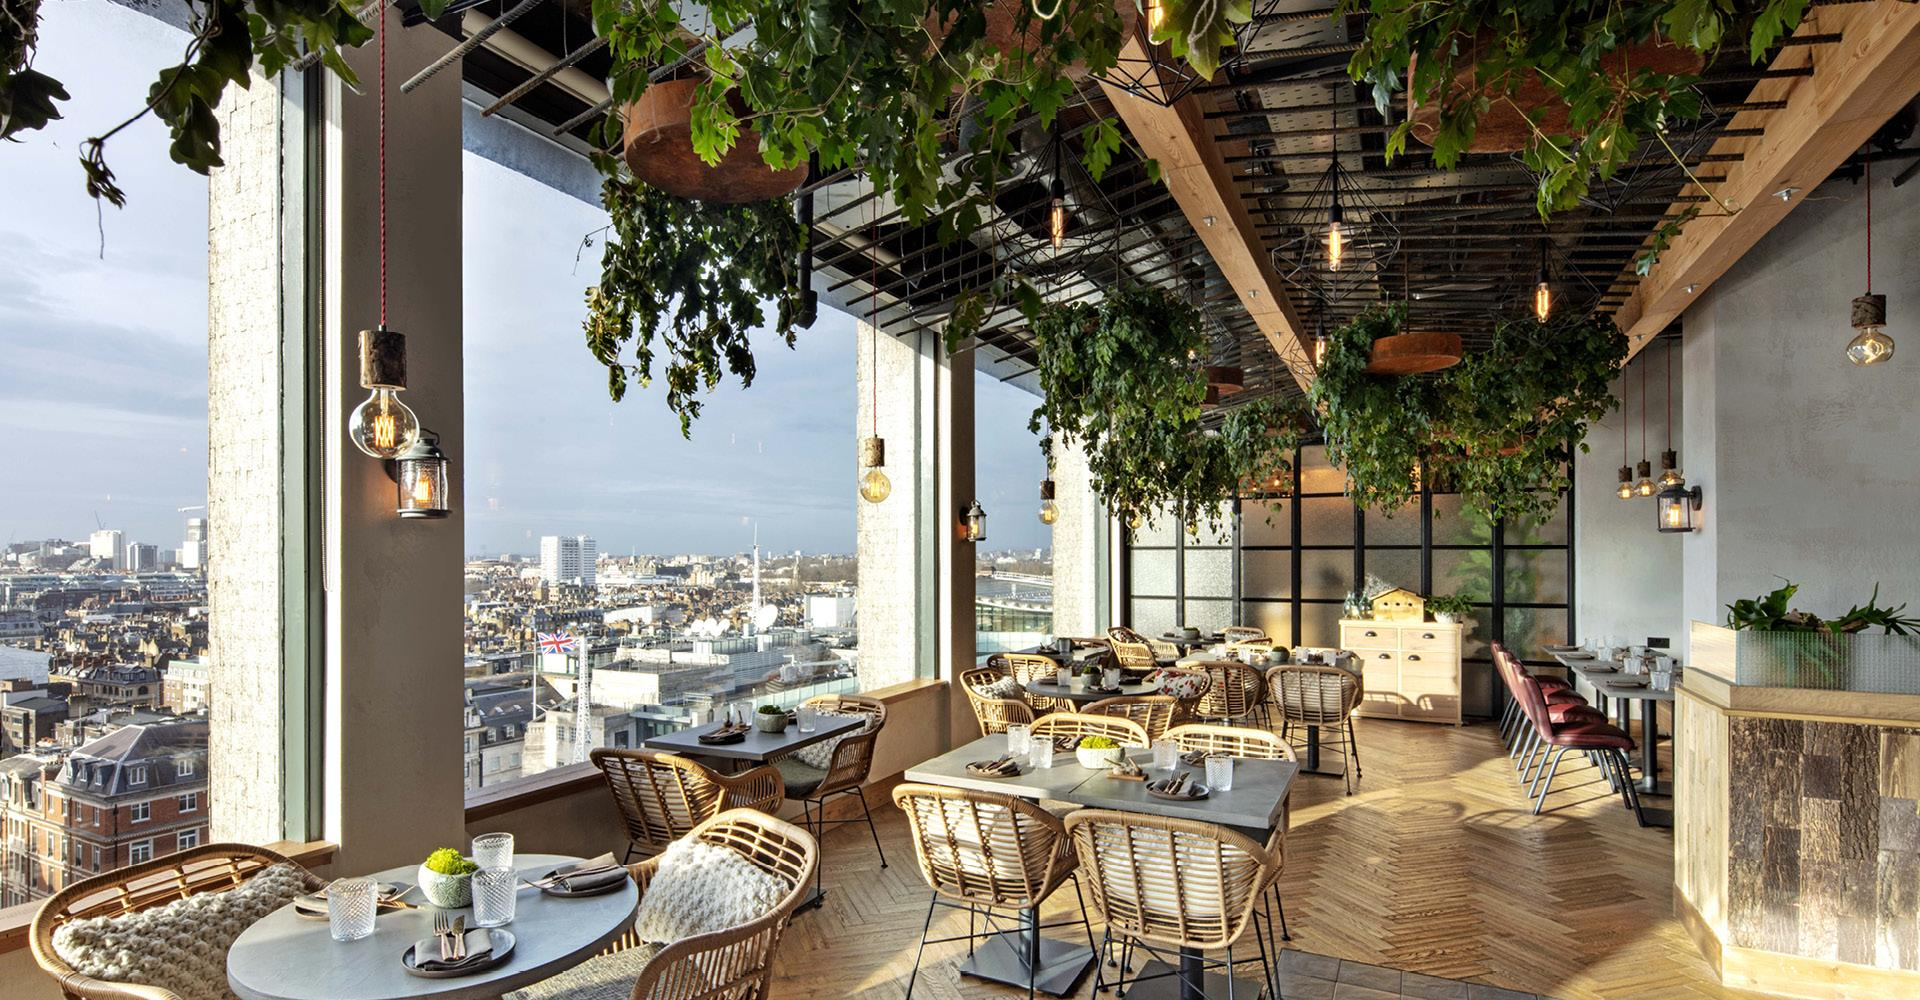 A view of the restaurant with wonderful views over London